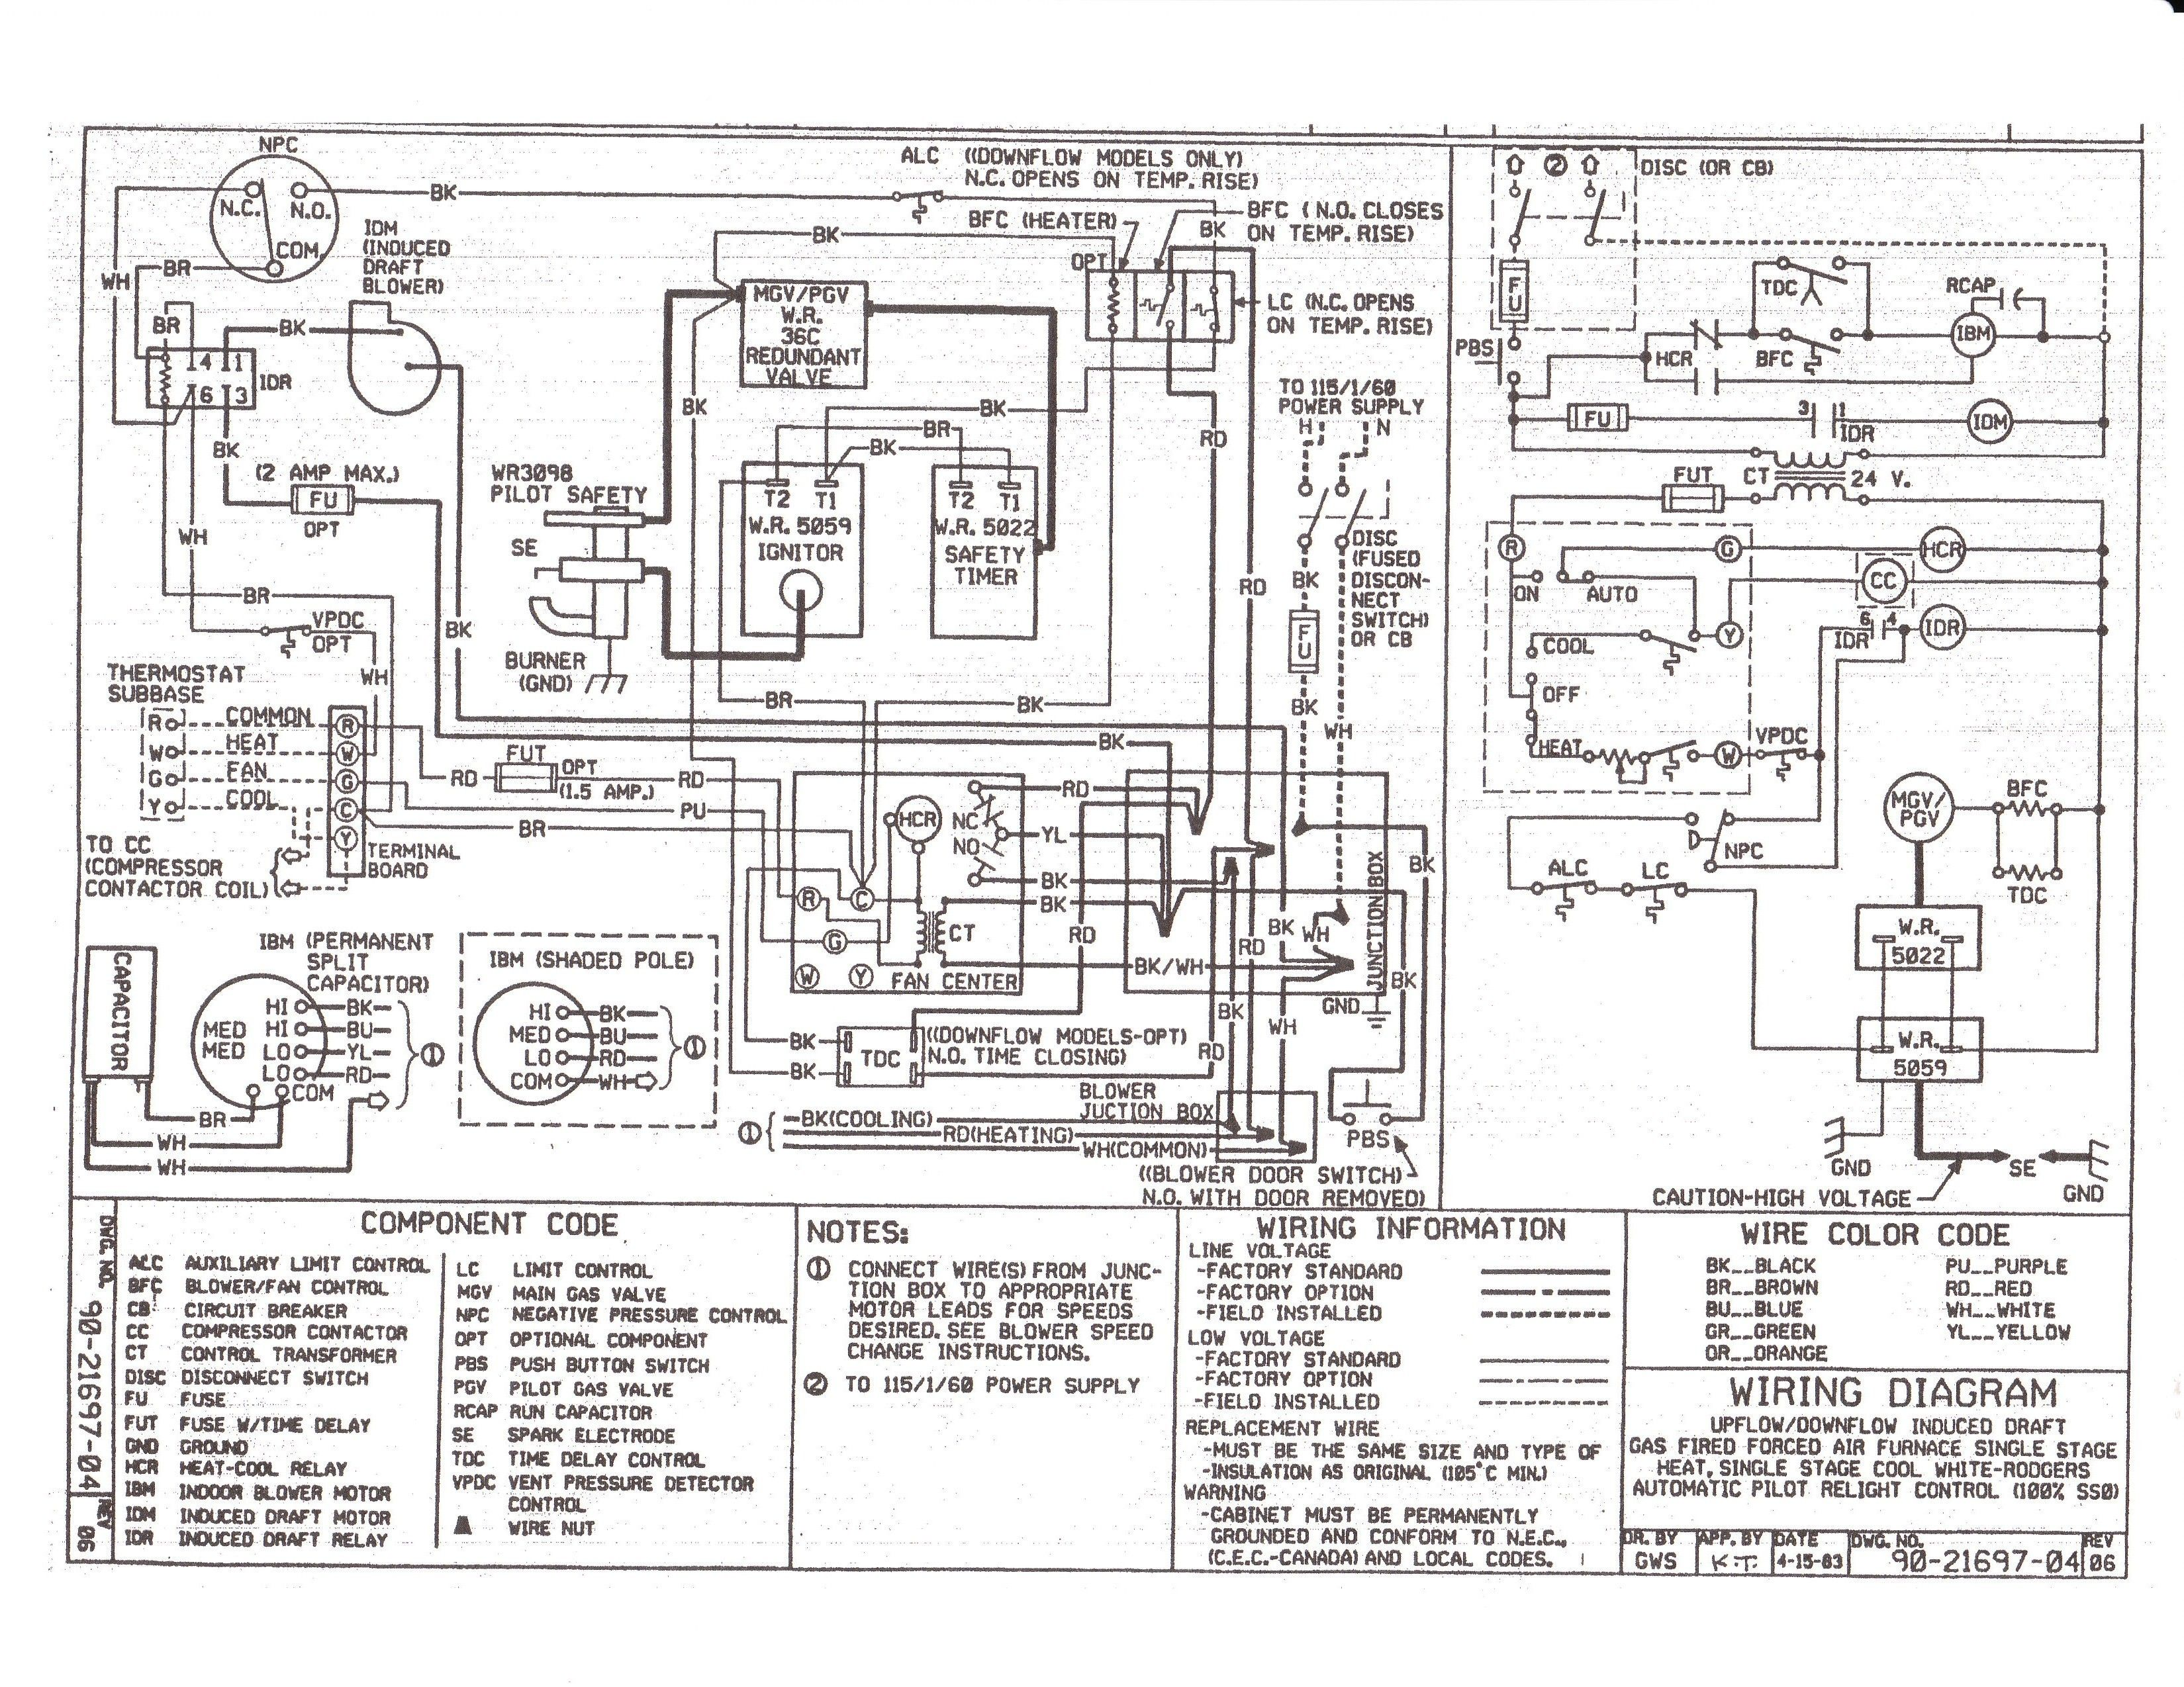 New Wiring Diagram For Intertherm Electric Furnace